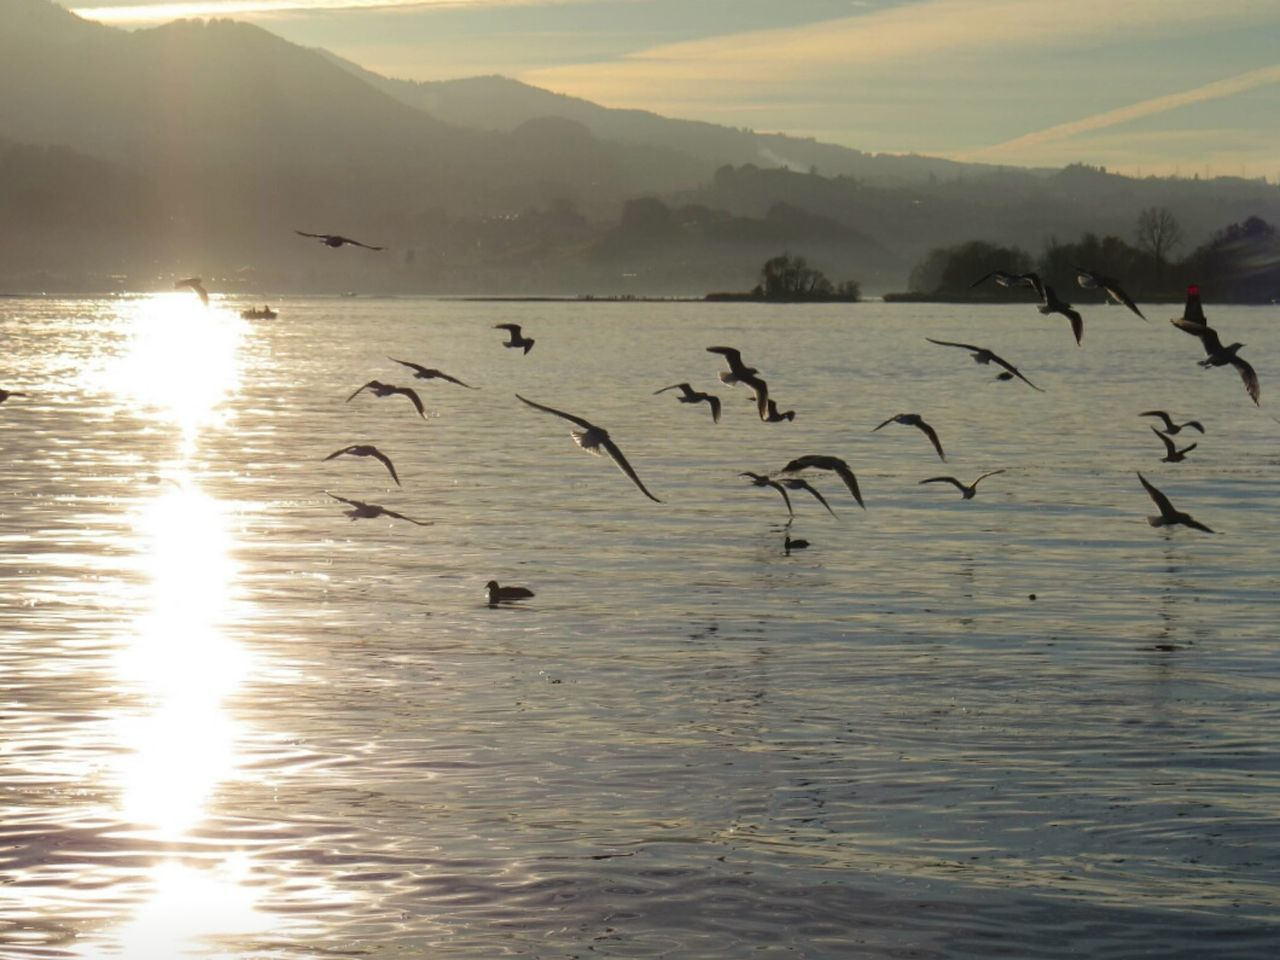 Birds Flying Over Lake By Mountain Against Sky During Sunset